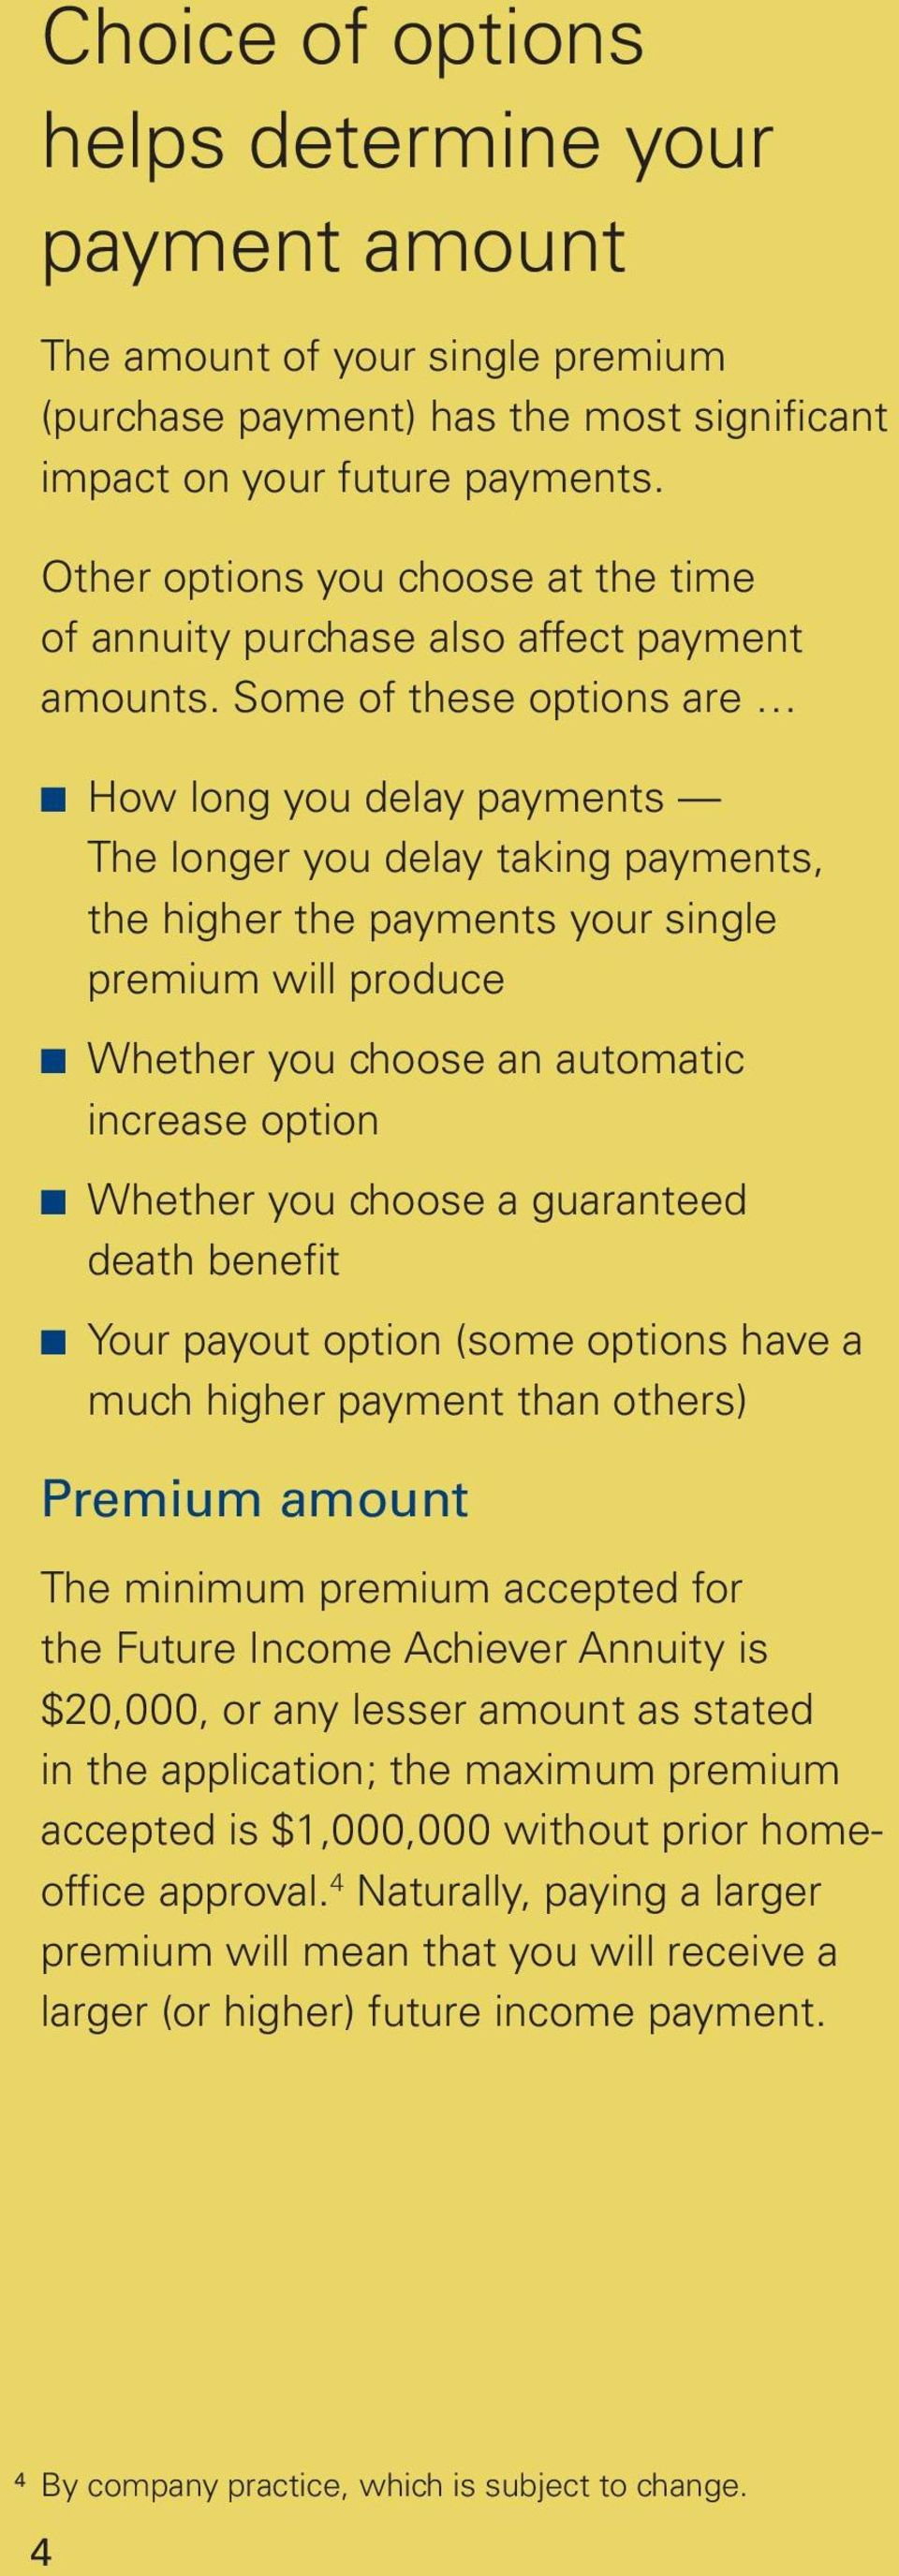 Some of these options are How long you delay payments The longer you delay taking payments, the higher the payments your single premium will produce Whether you choose an automatic increase option